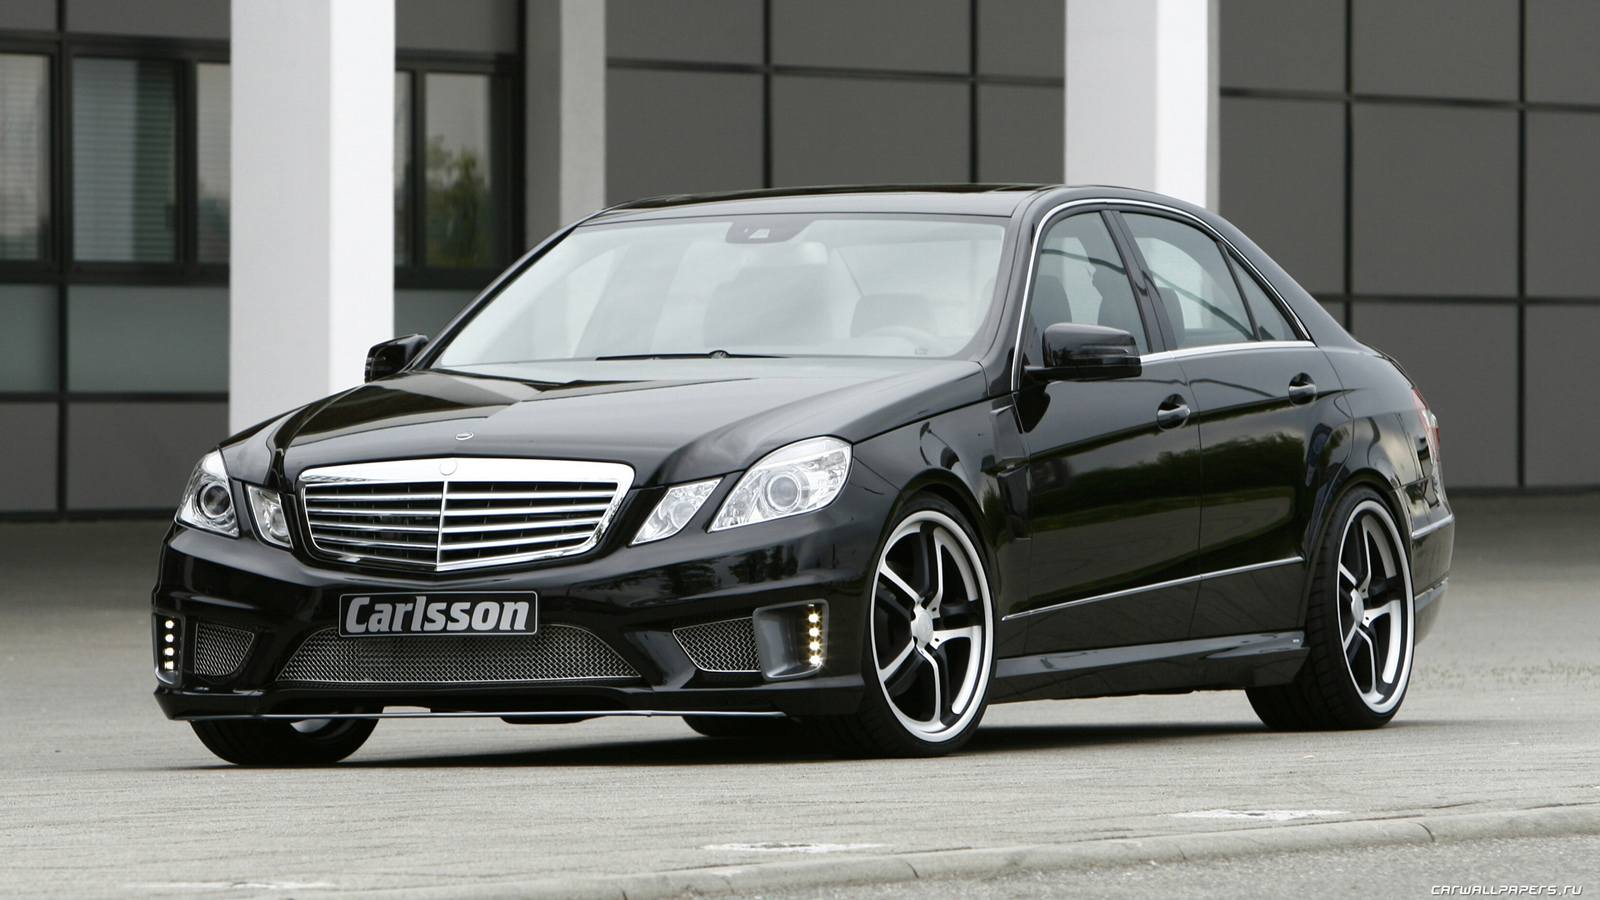 Mercedes benz e class cars specifications technical data for Mercedes benz 2009 e class